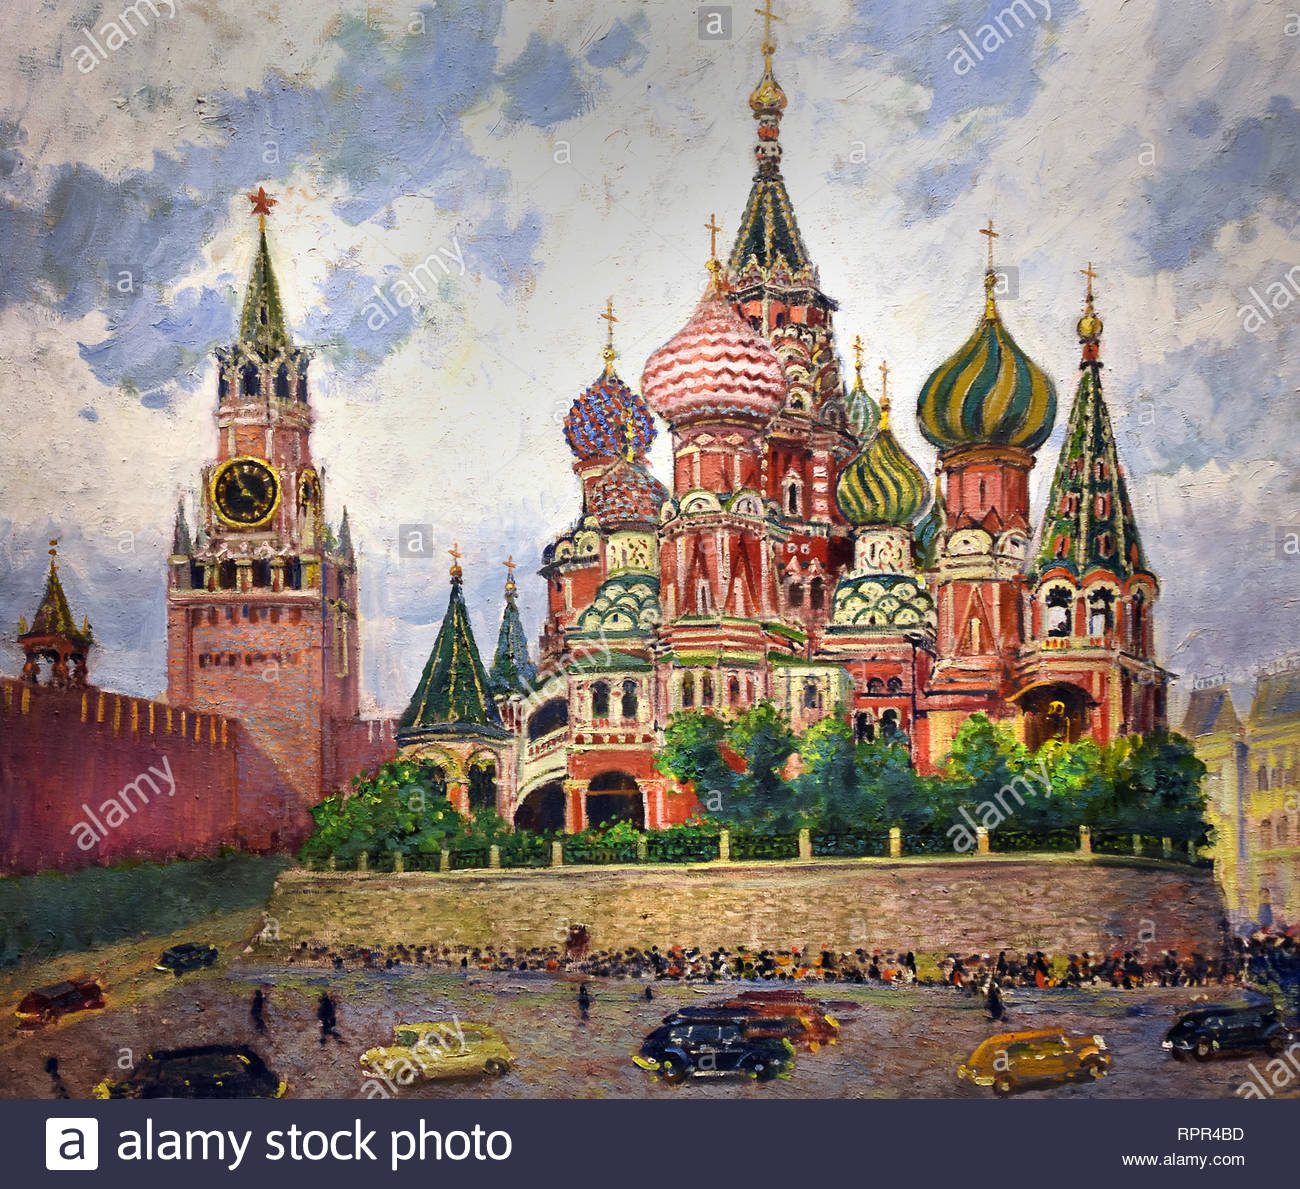 Moscow St Basil Cathedral 1947. by Alexander Gerasimov. Soviet Union Communist Propaganda (Russia under Lenin and Stalin1921-1953 ). - Stock Image